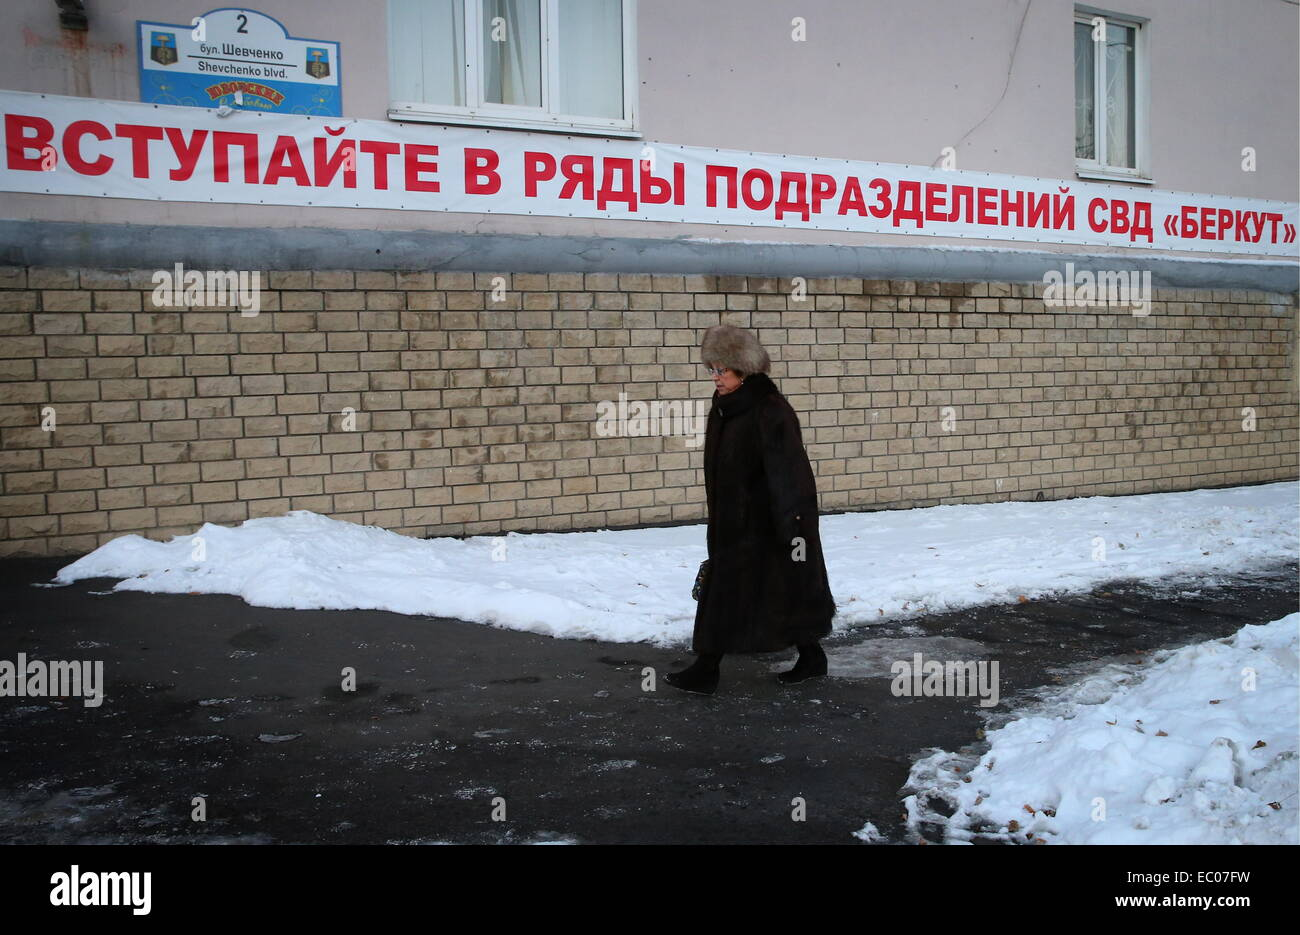 Donetsk, Ukraine. 6th Dec, 2014. Woman walks in a Donetsk street. The slogan calls on citizens to join local police - Stock Image